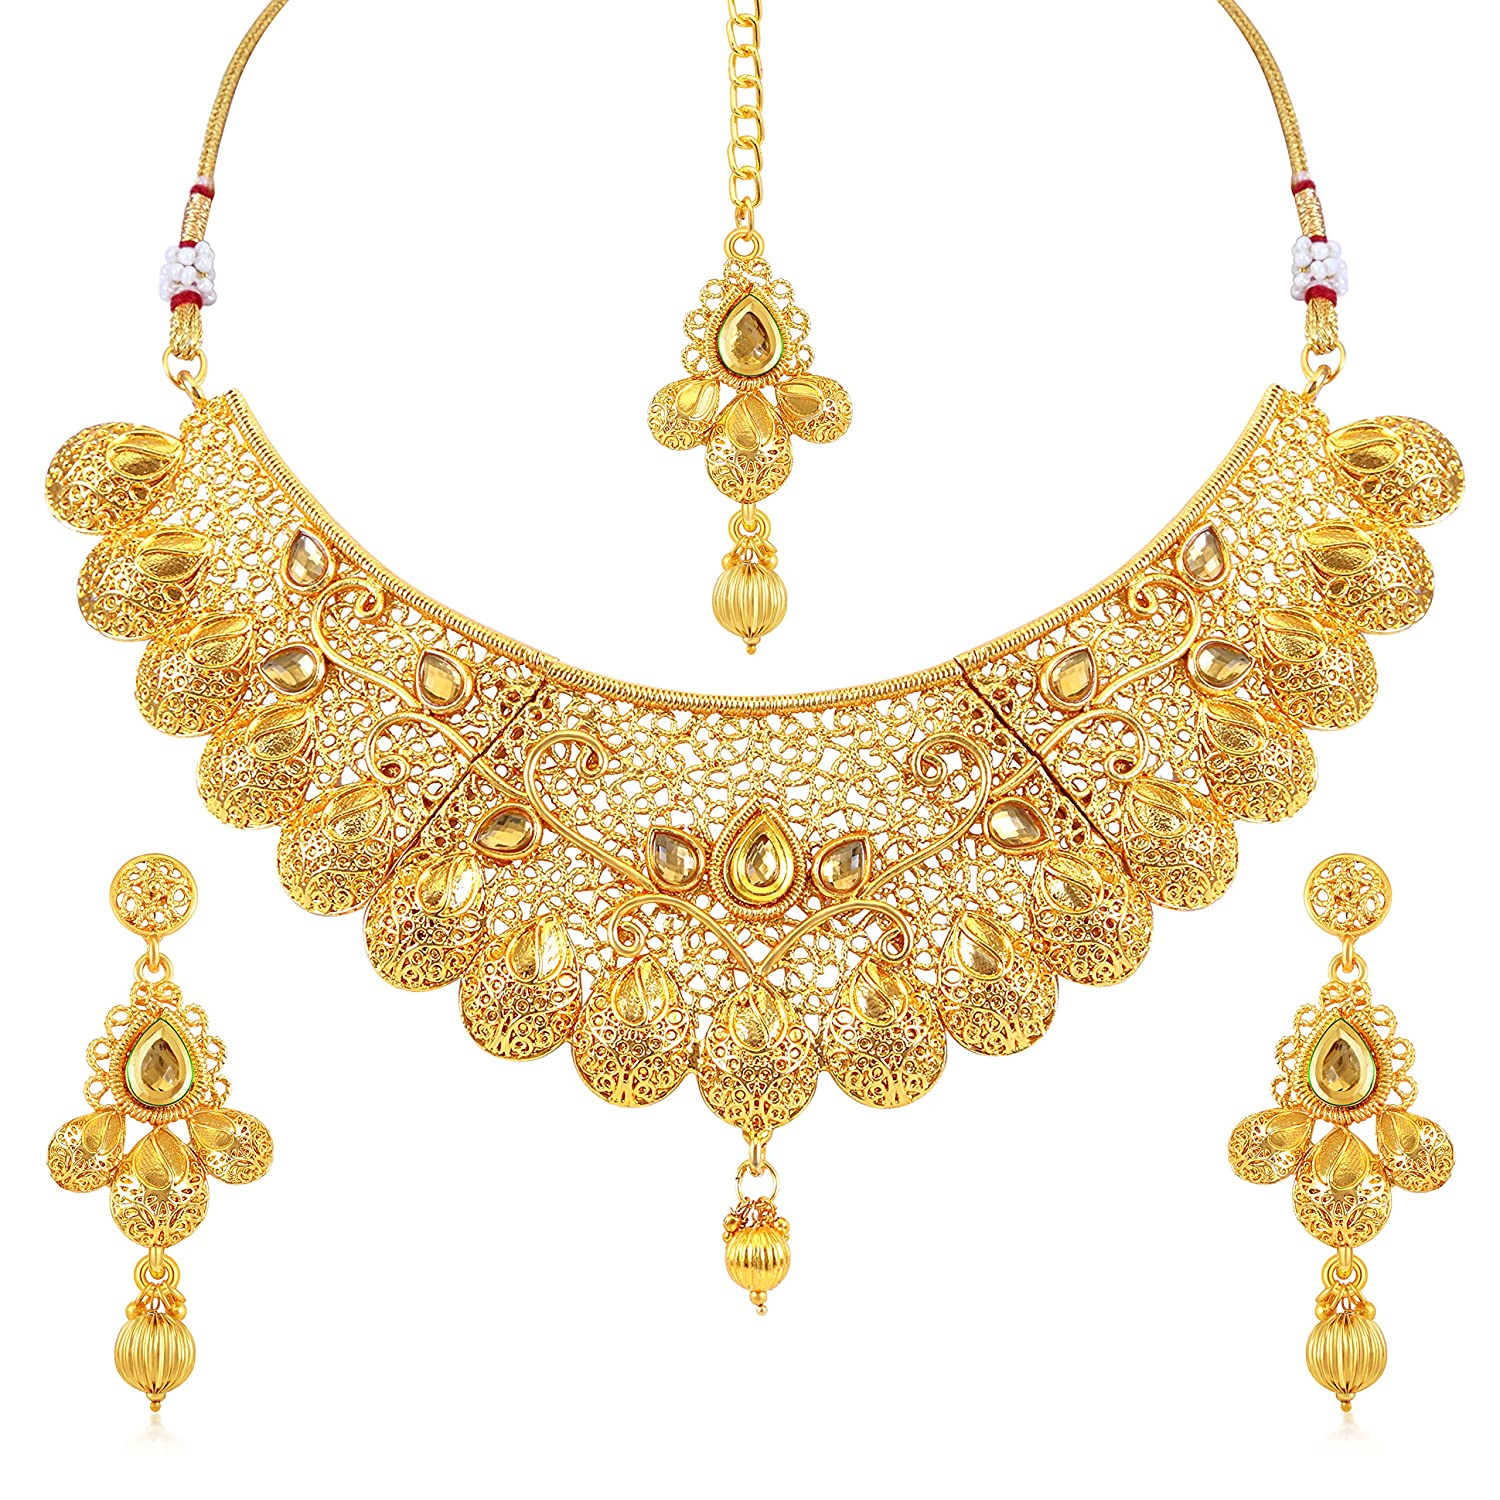 Sukkhi Traditional Gold Plated Wedding Jewellery Choker Necklace Set For Women